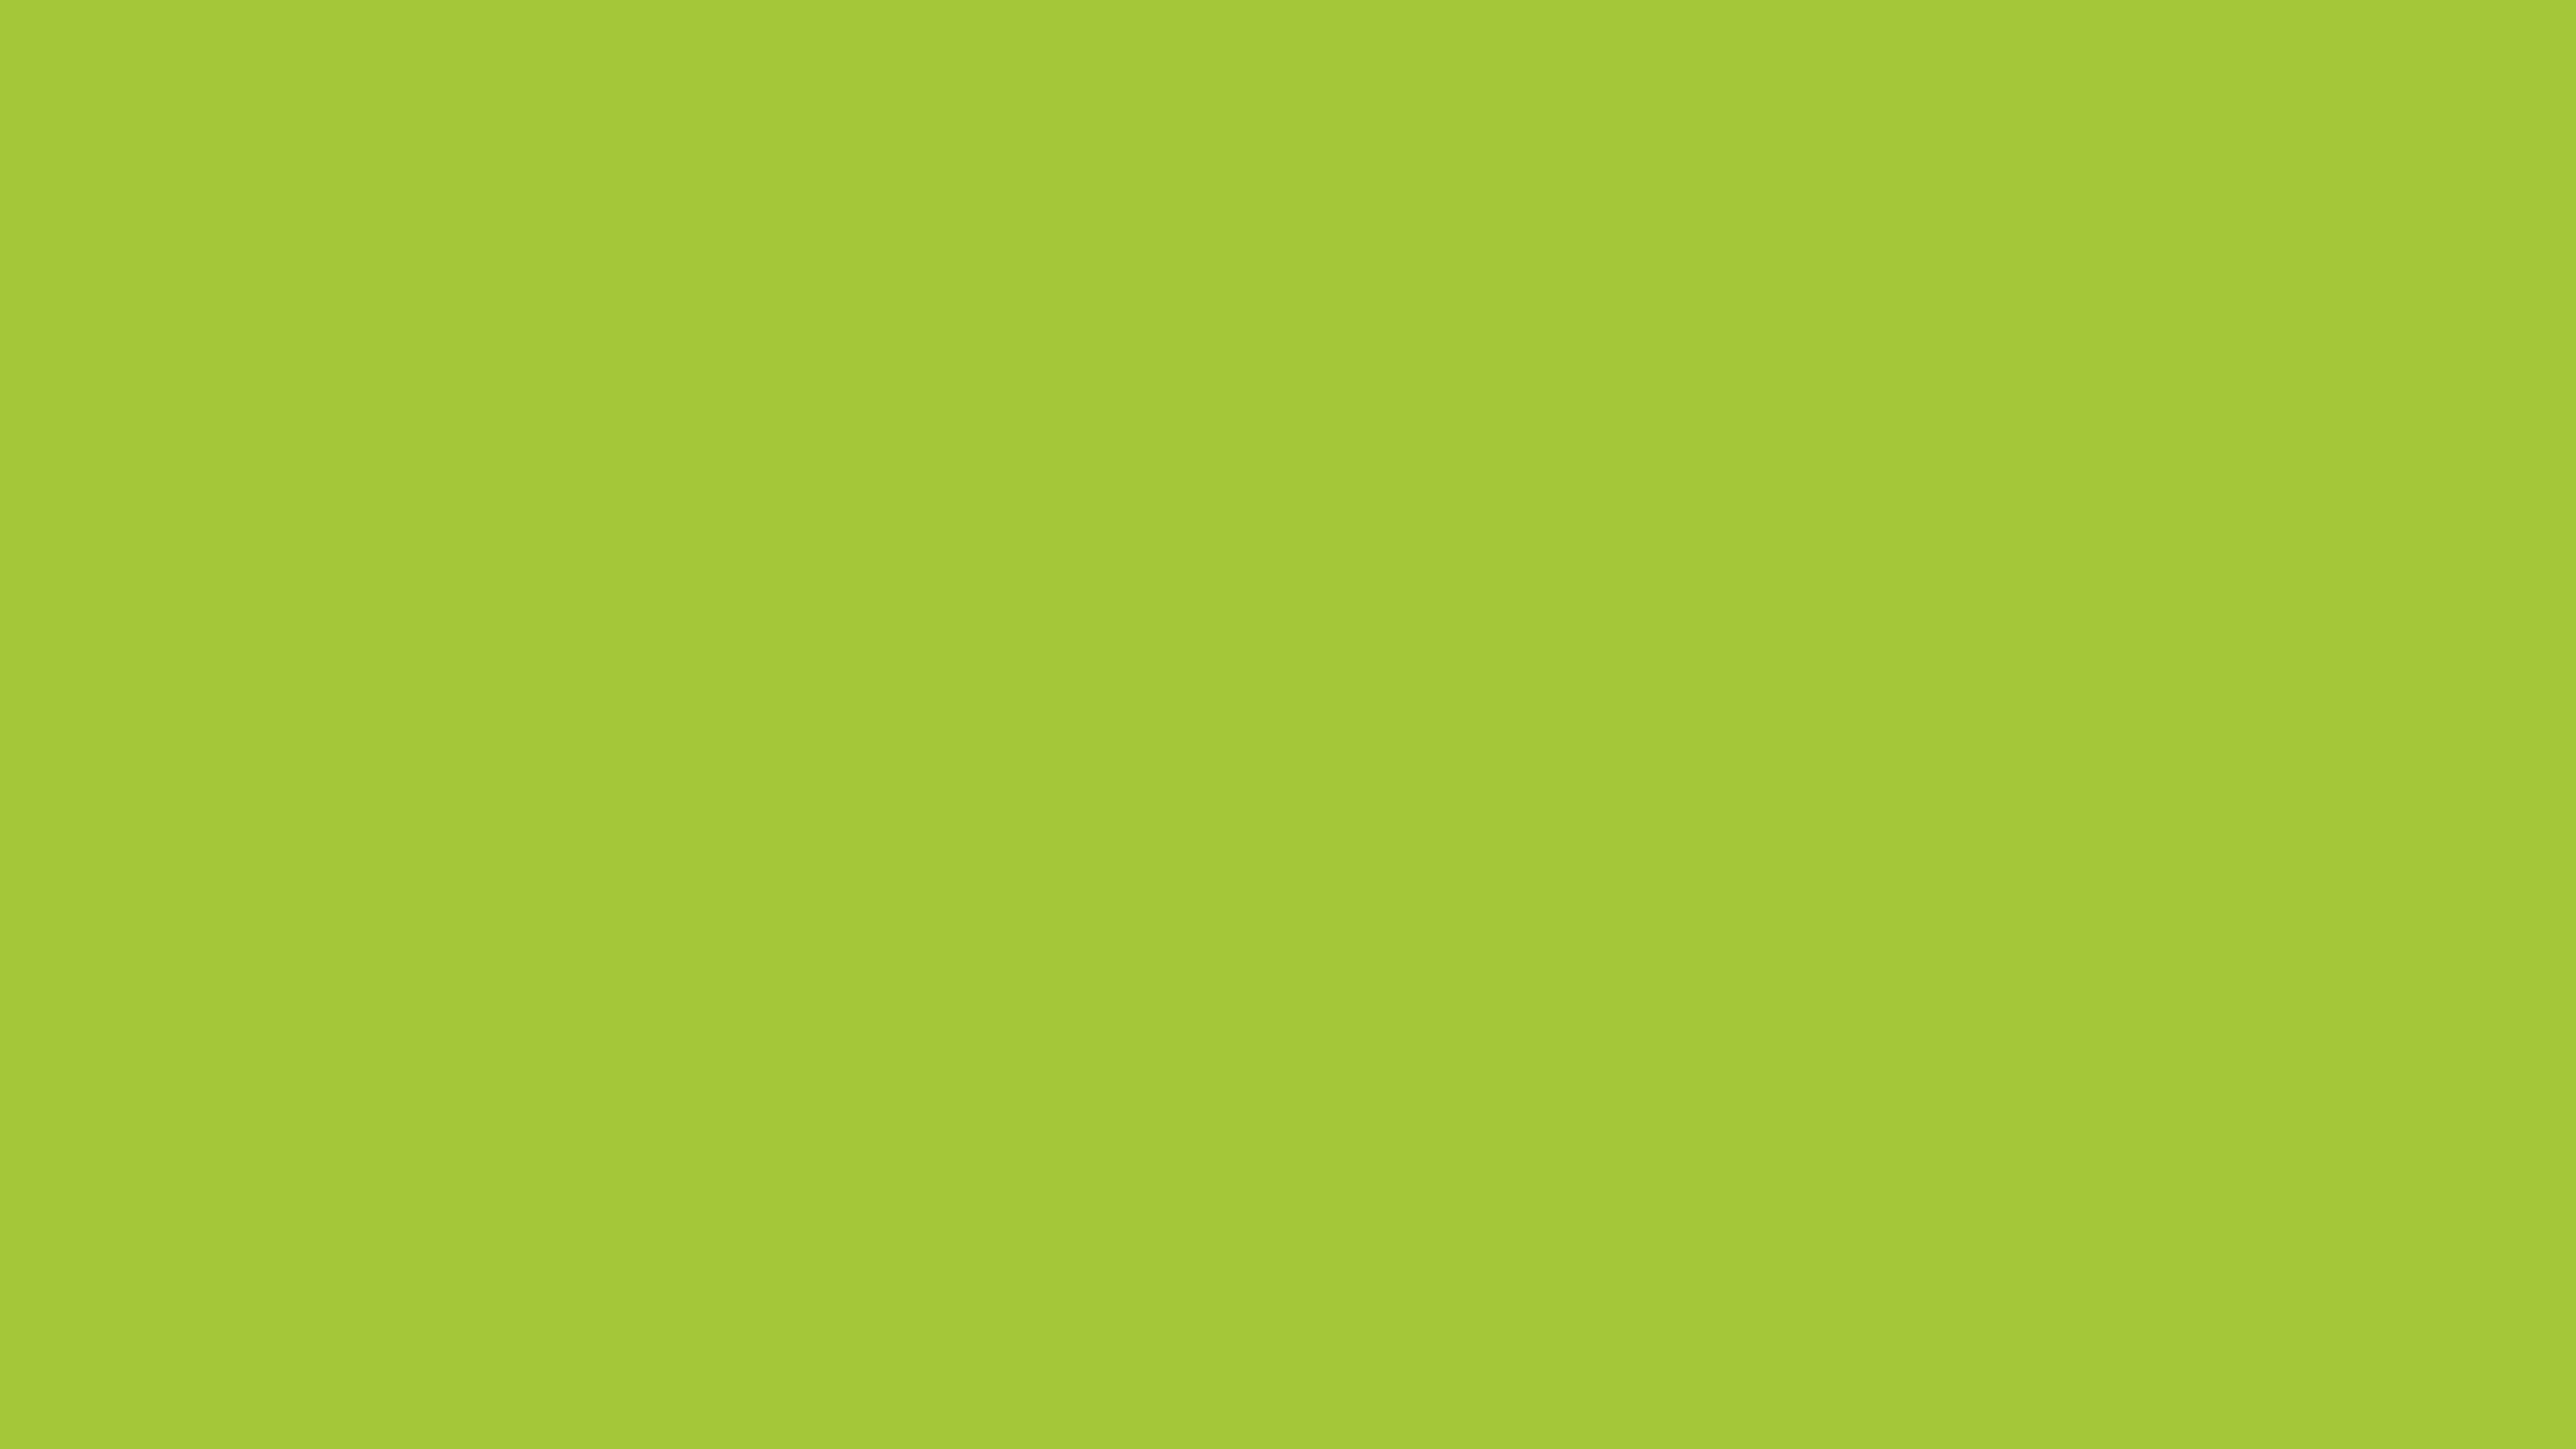 5120x2880 Android Green Solid Color Background